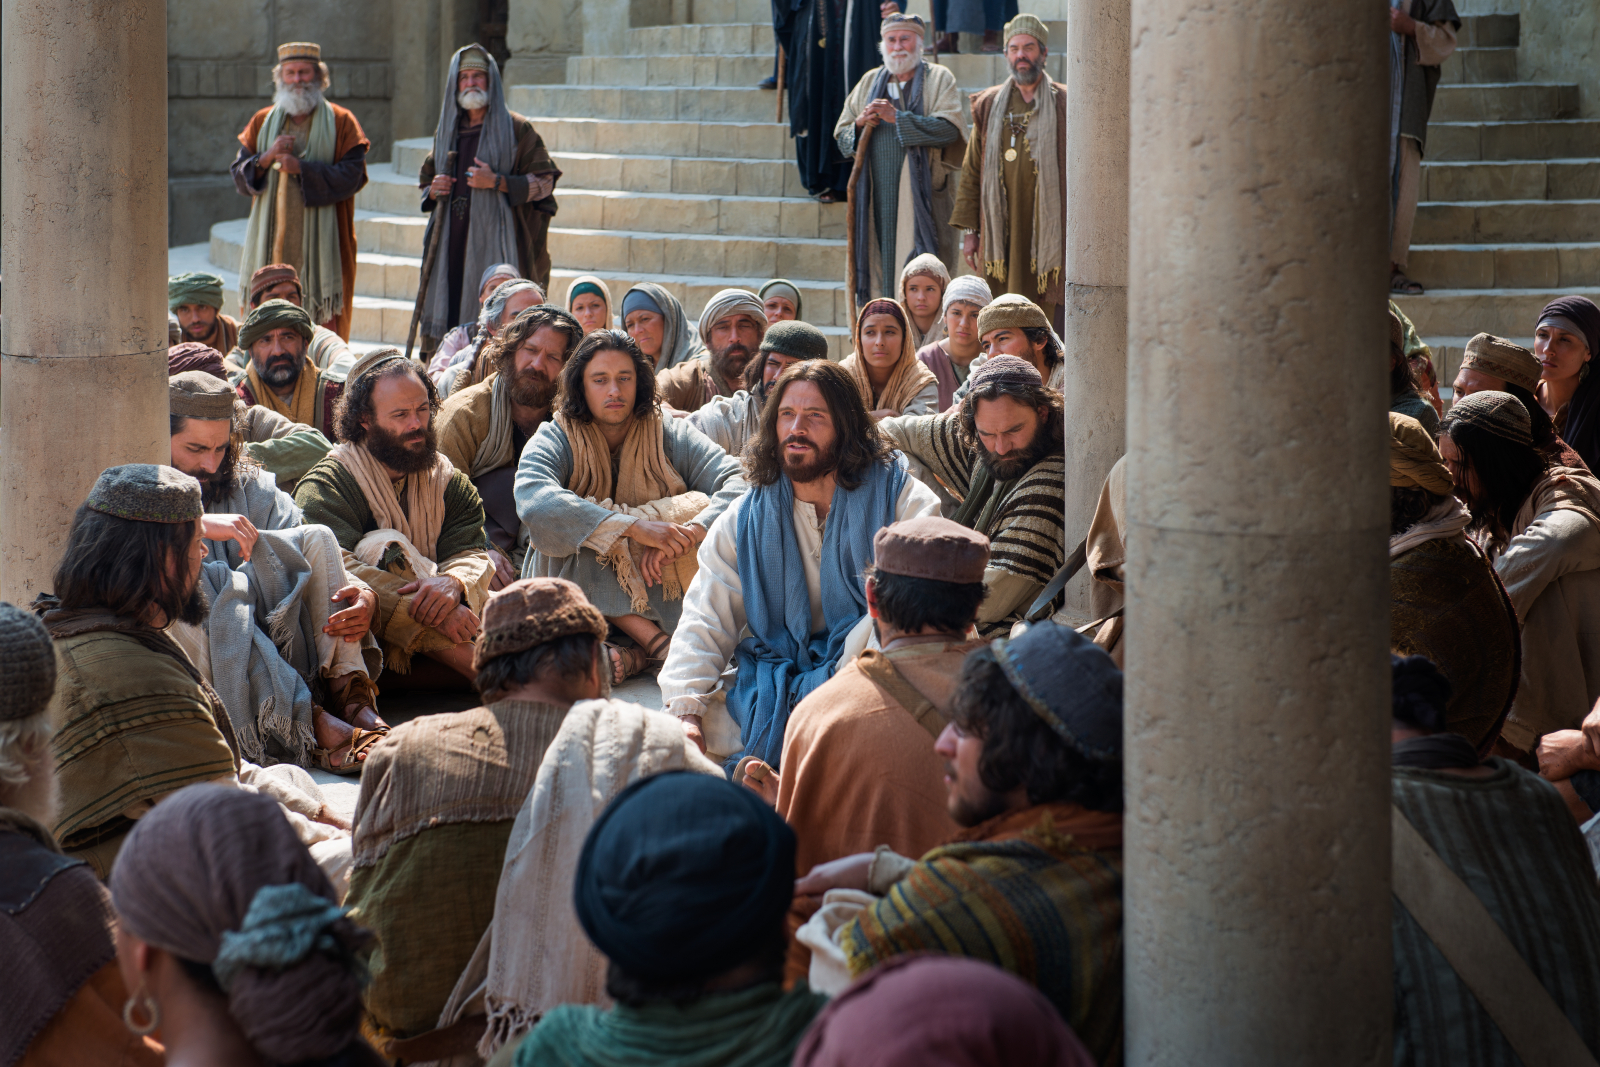 An image from the Church's Bible video series depicts Christ teaching a group of people.